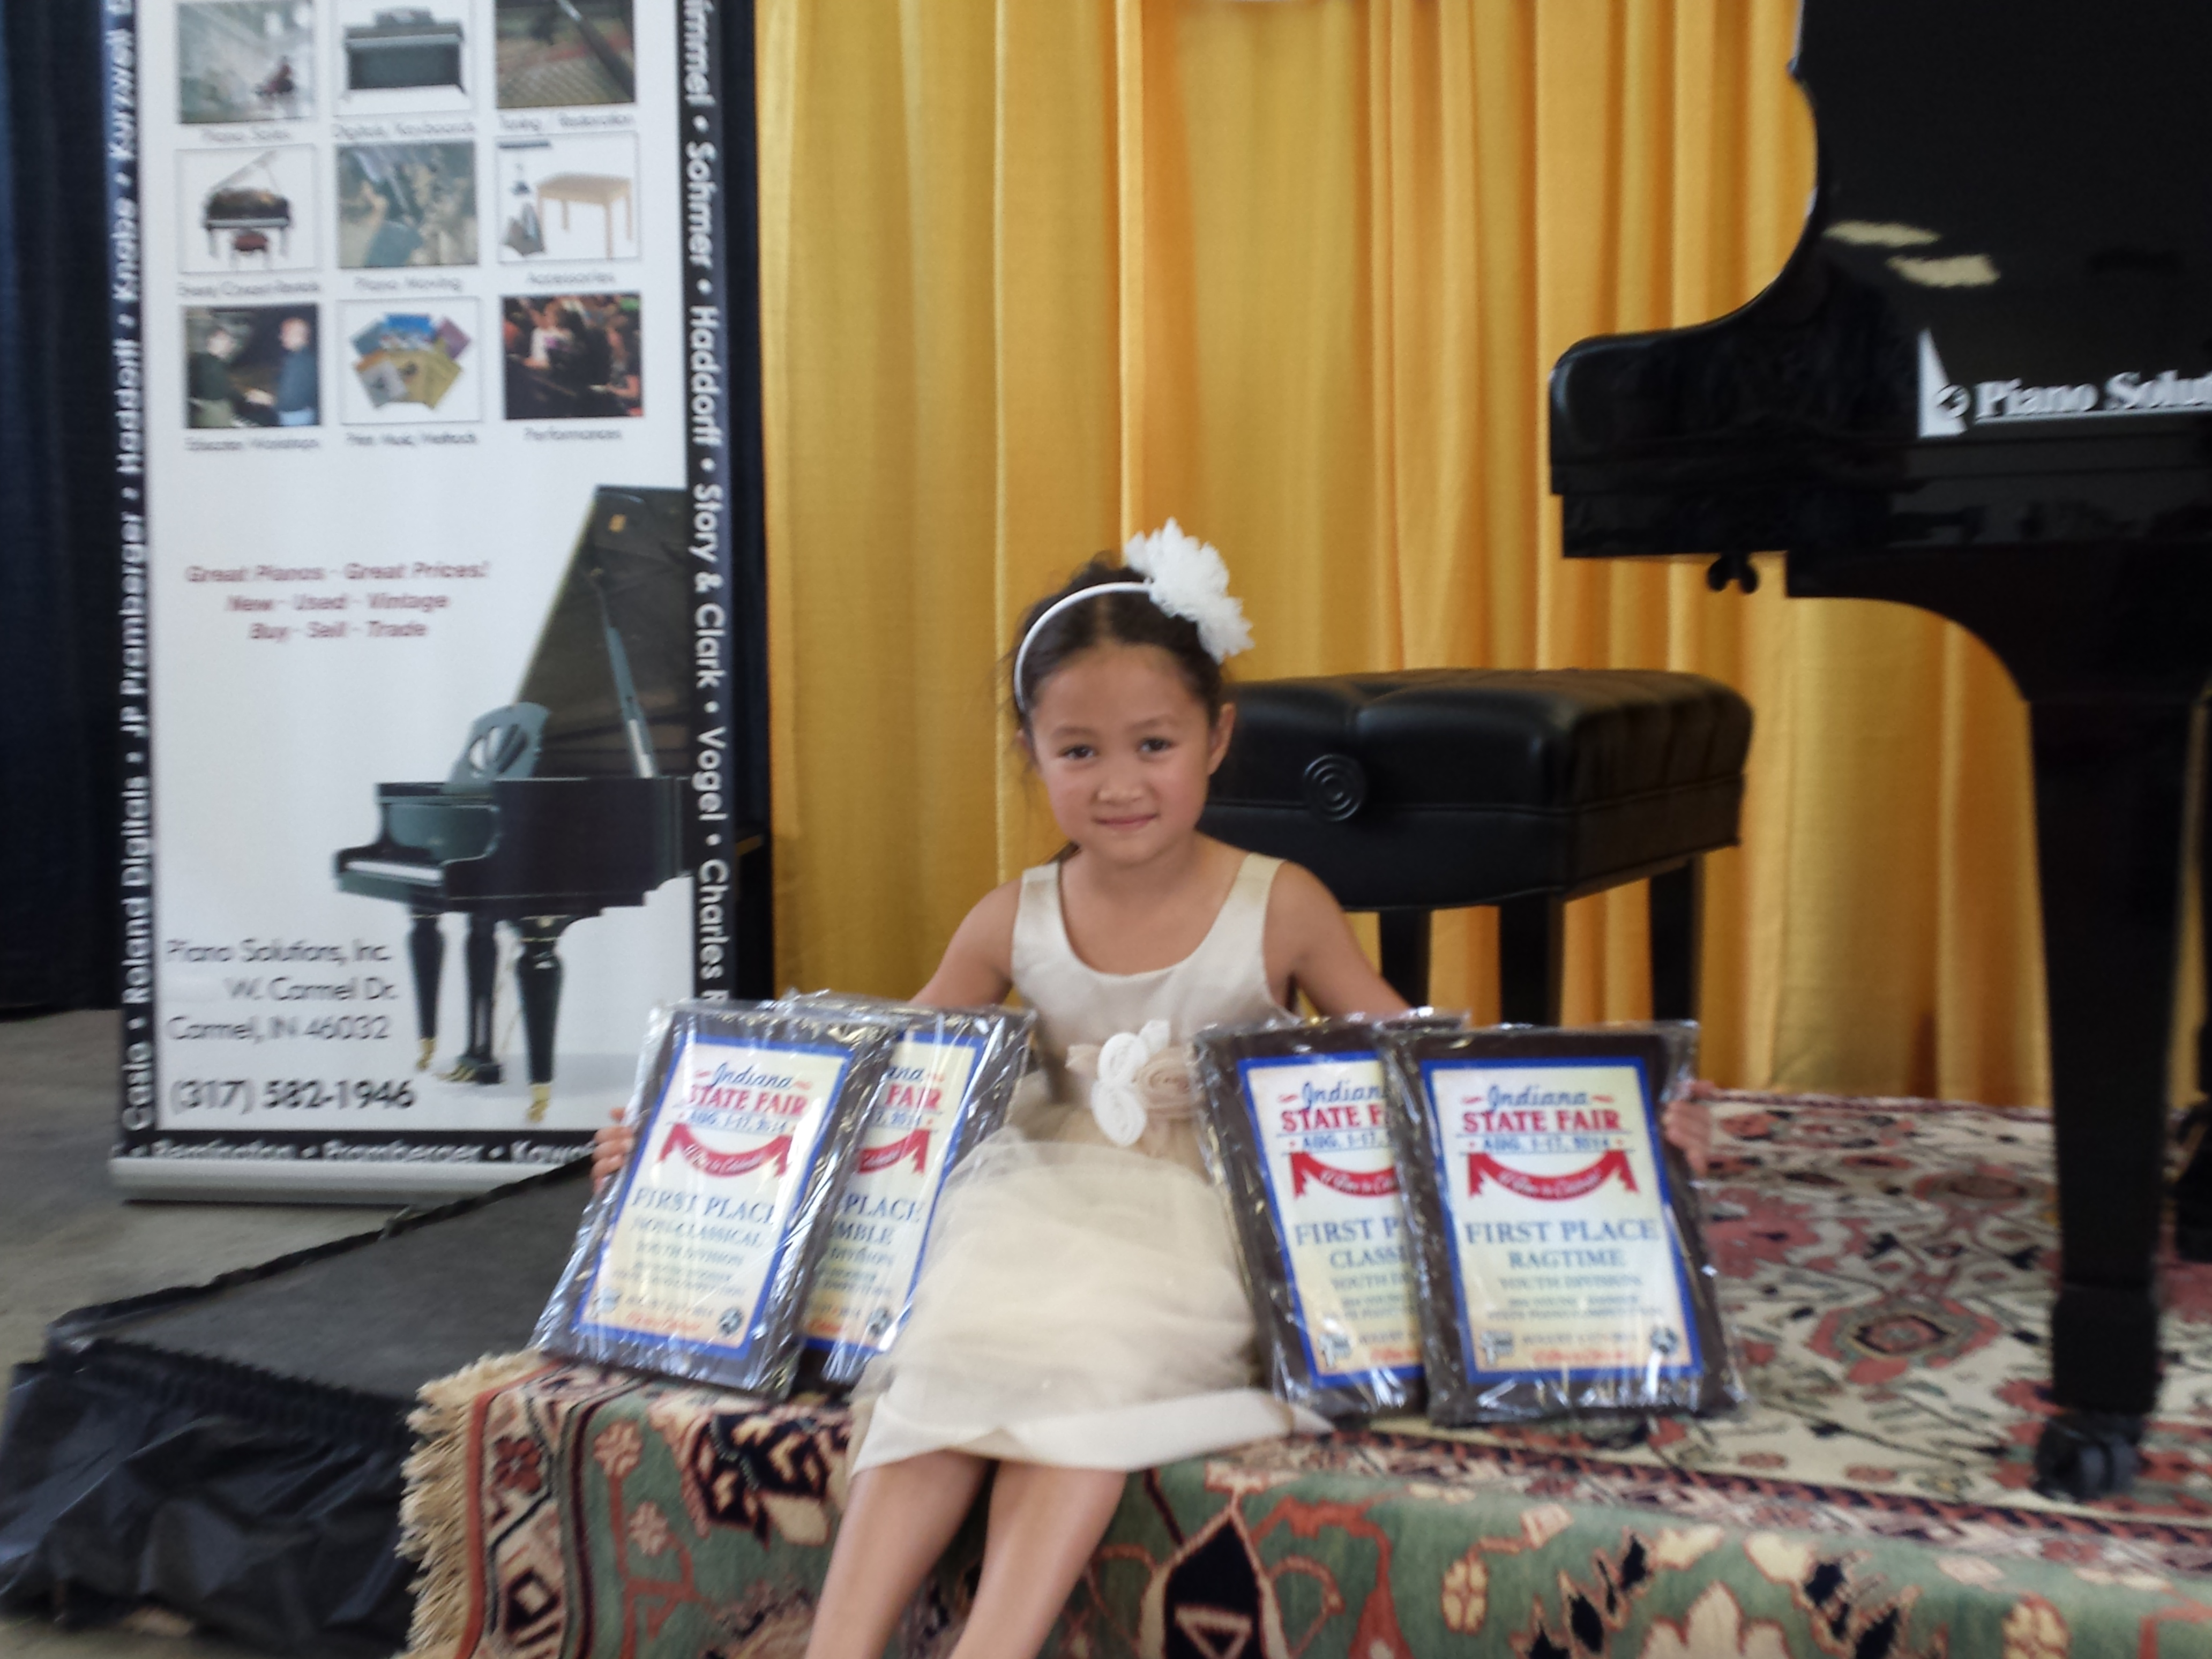 My daughter Jessica (6) of Carmel just placed first in 4 different categories at the 2014 State Fair piano competition. Would it be possible to have this printed?  I could provide more information if needed.